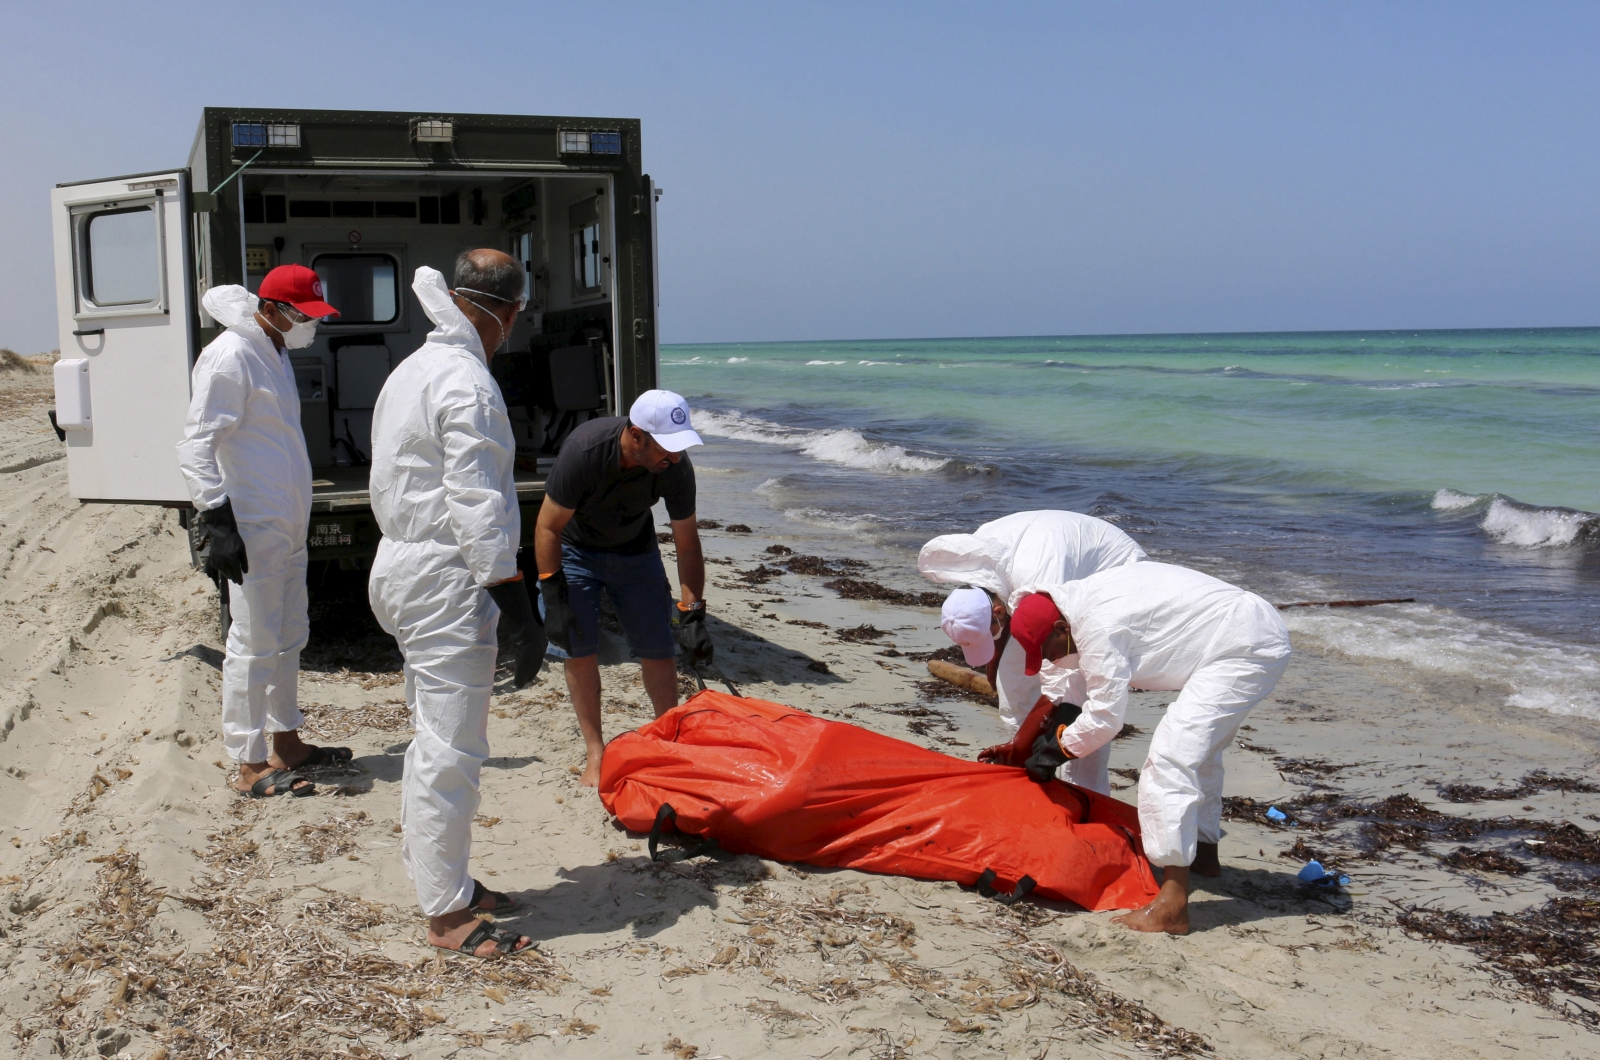 Zuwara Libya migrants drowned